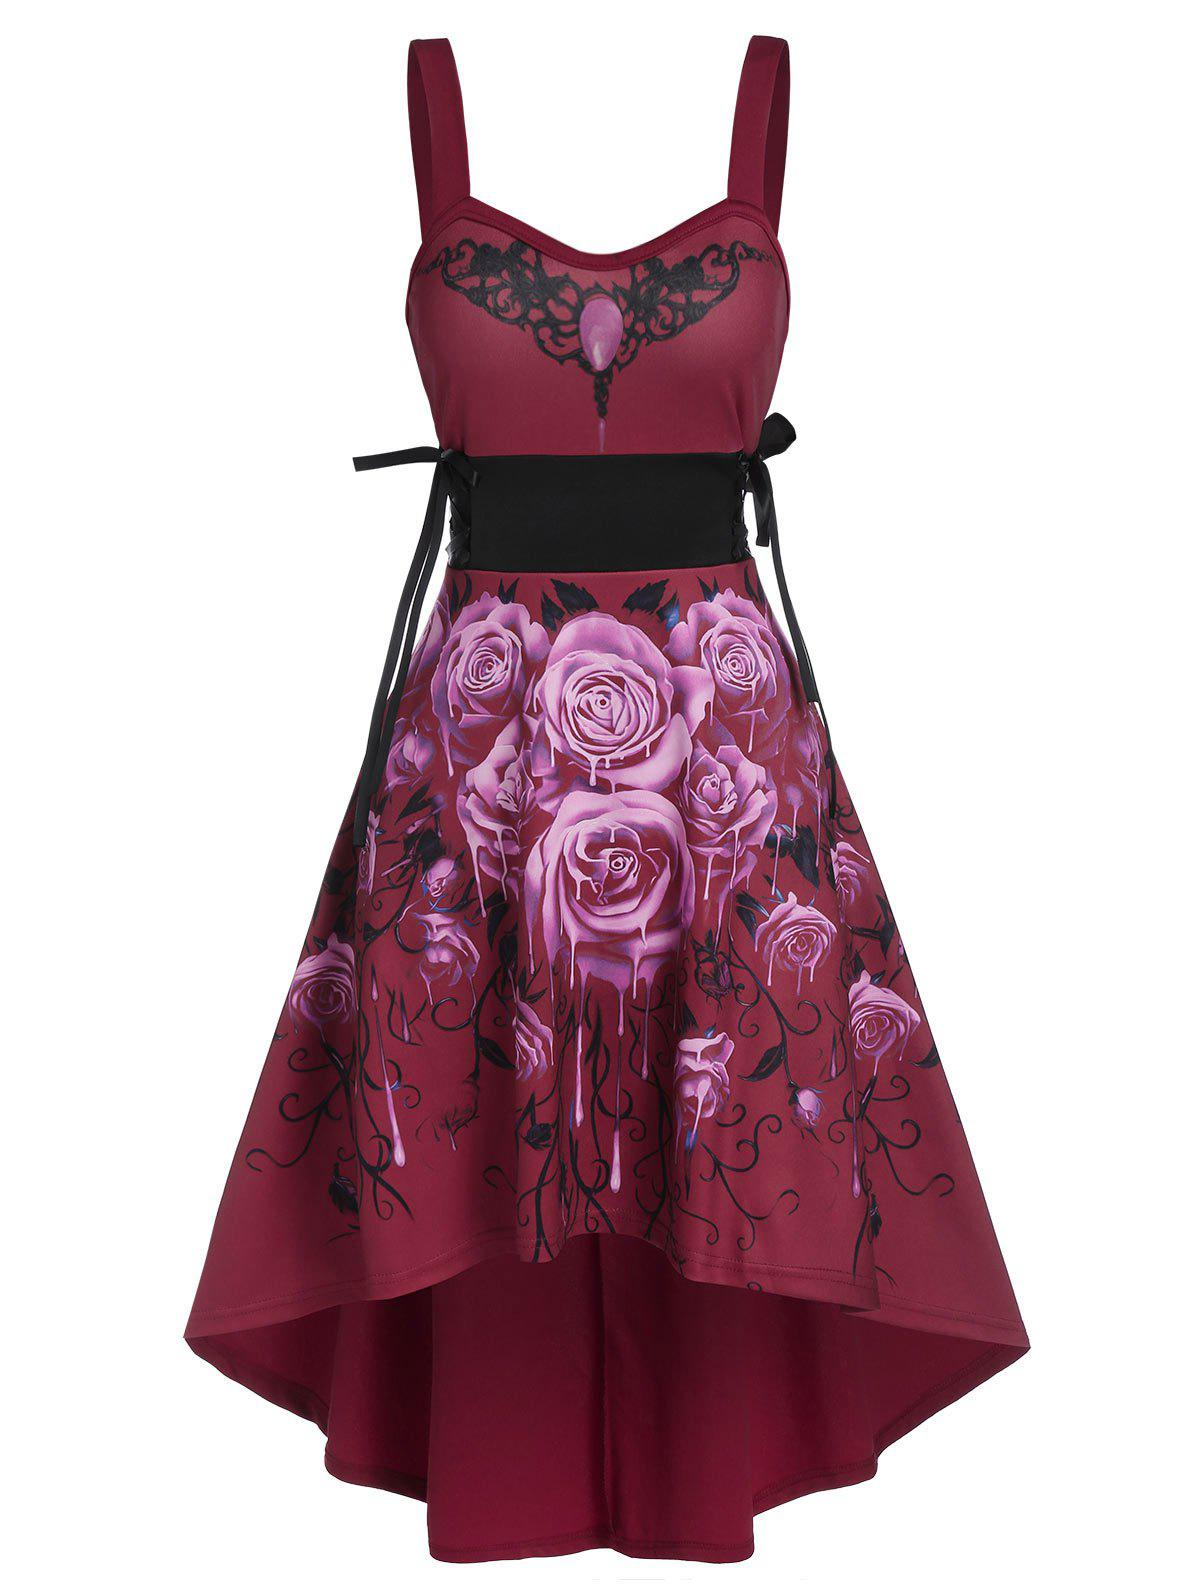 Fancy Sleeveless Flower Print Lace-up High Low Gothic Dress